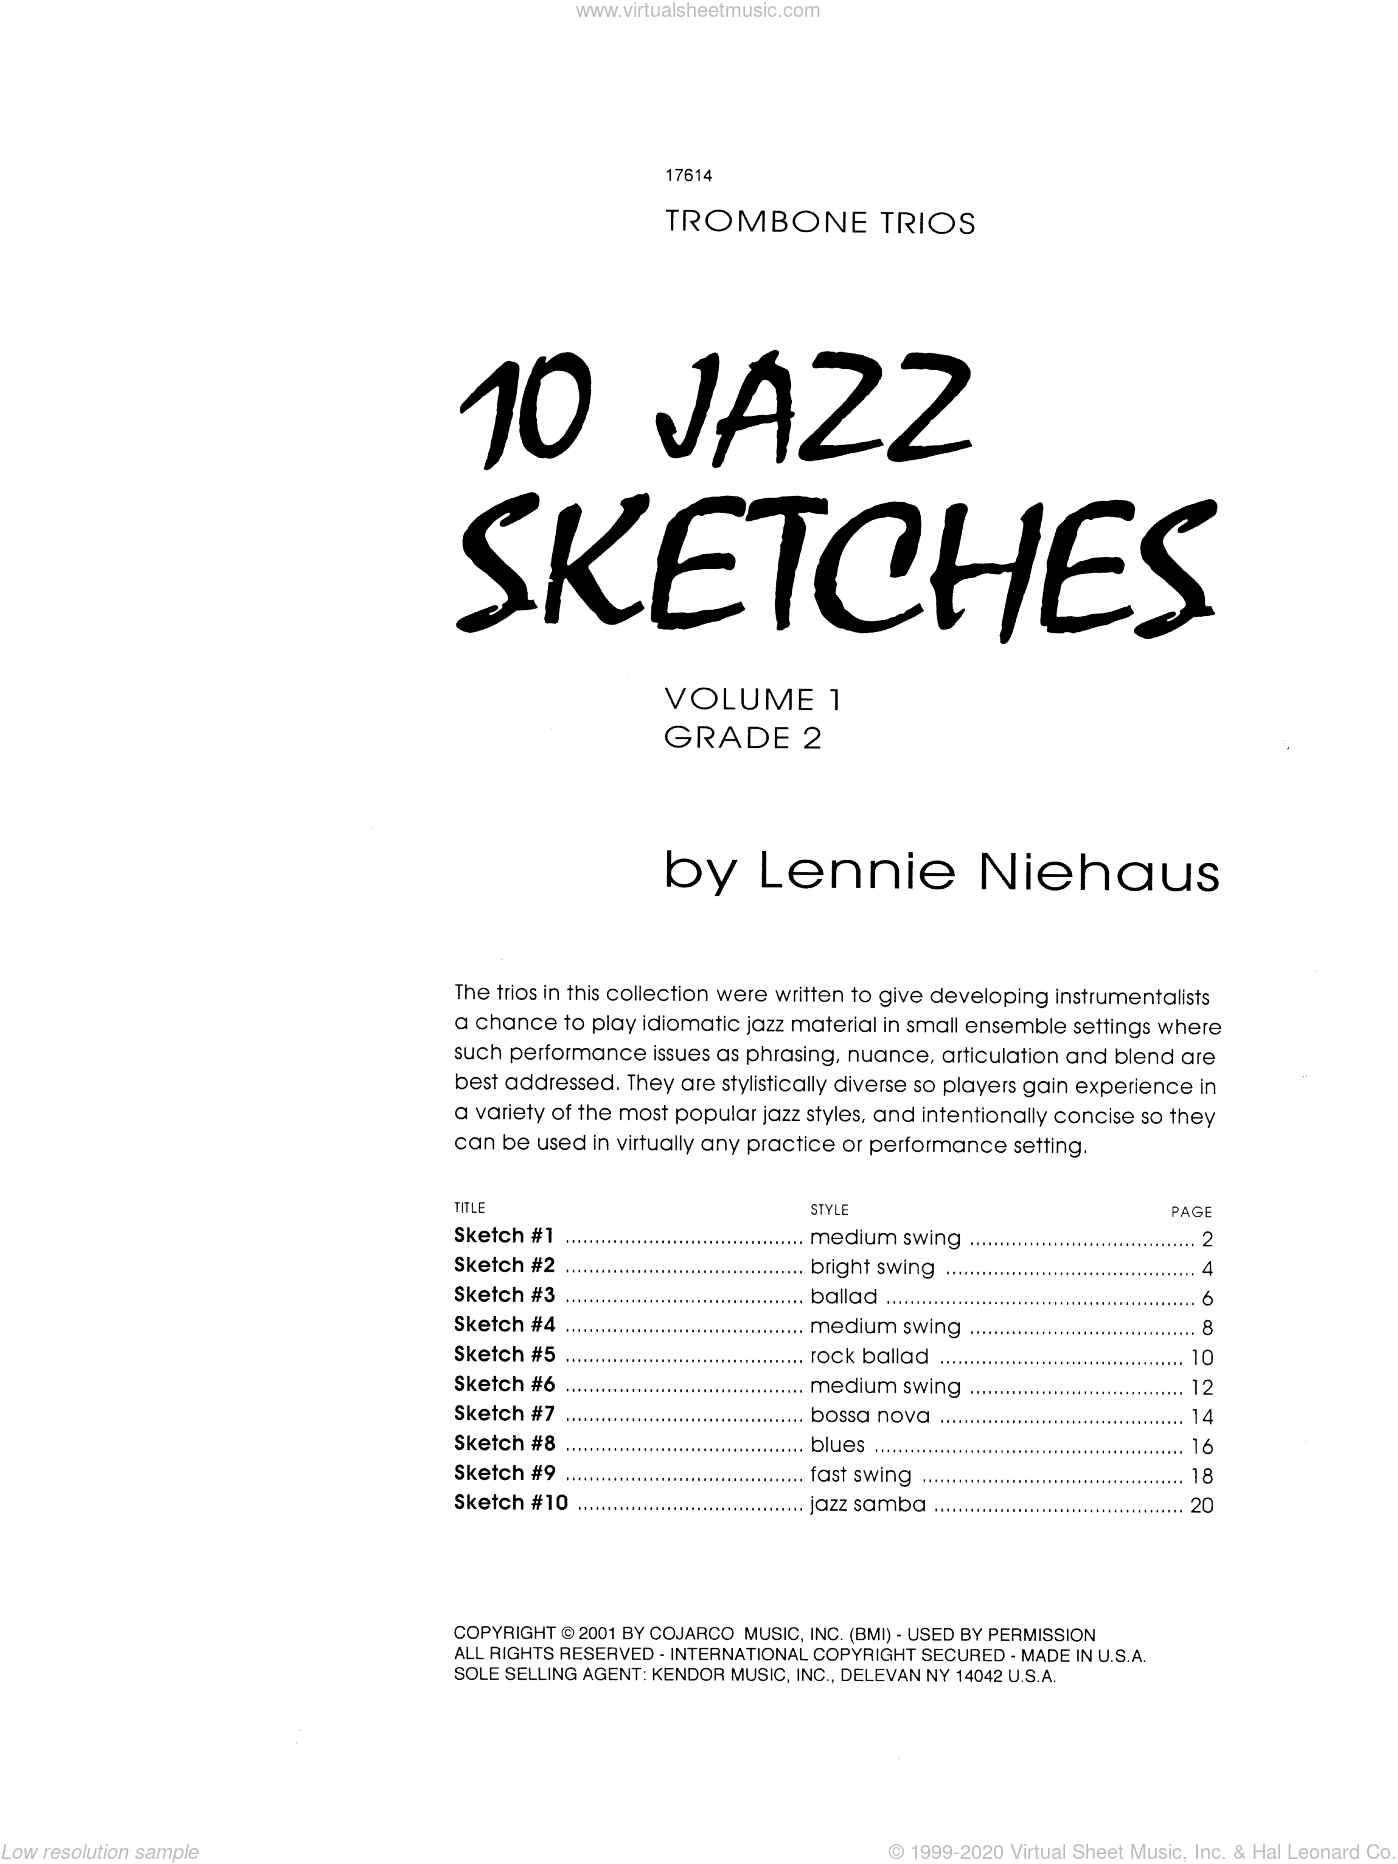 10 Jazz Sketches, Volume 1 sheet music for trombone trio by Lennie Niehaus. Score Image Preview.